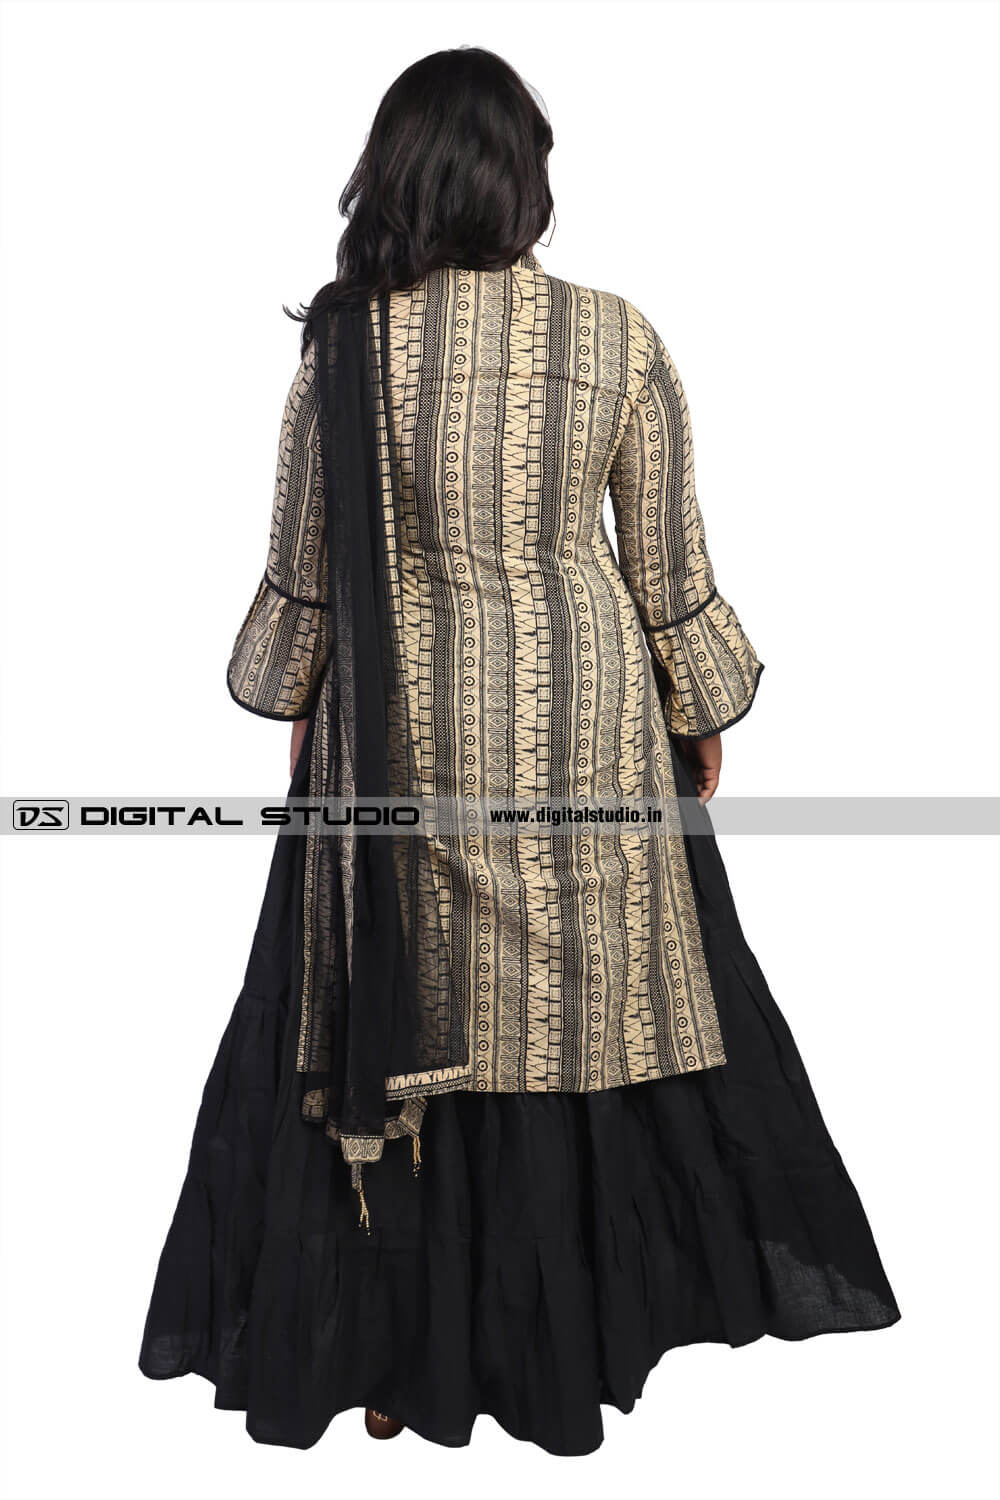 Back photo of salwar kameez